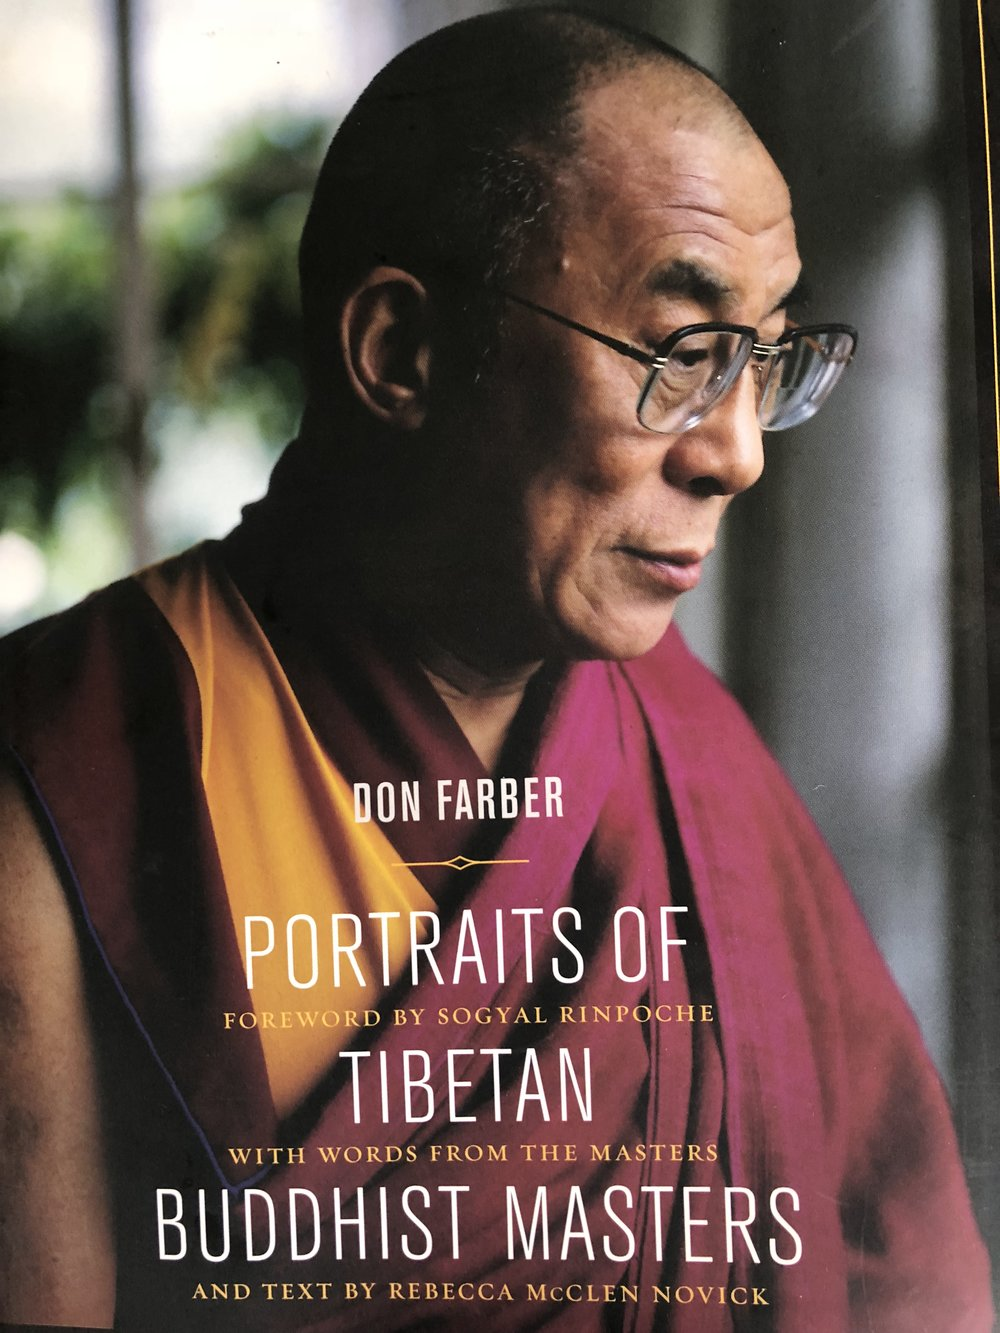 Portraits of Tibetan Buddhist Masters by Don Farber